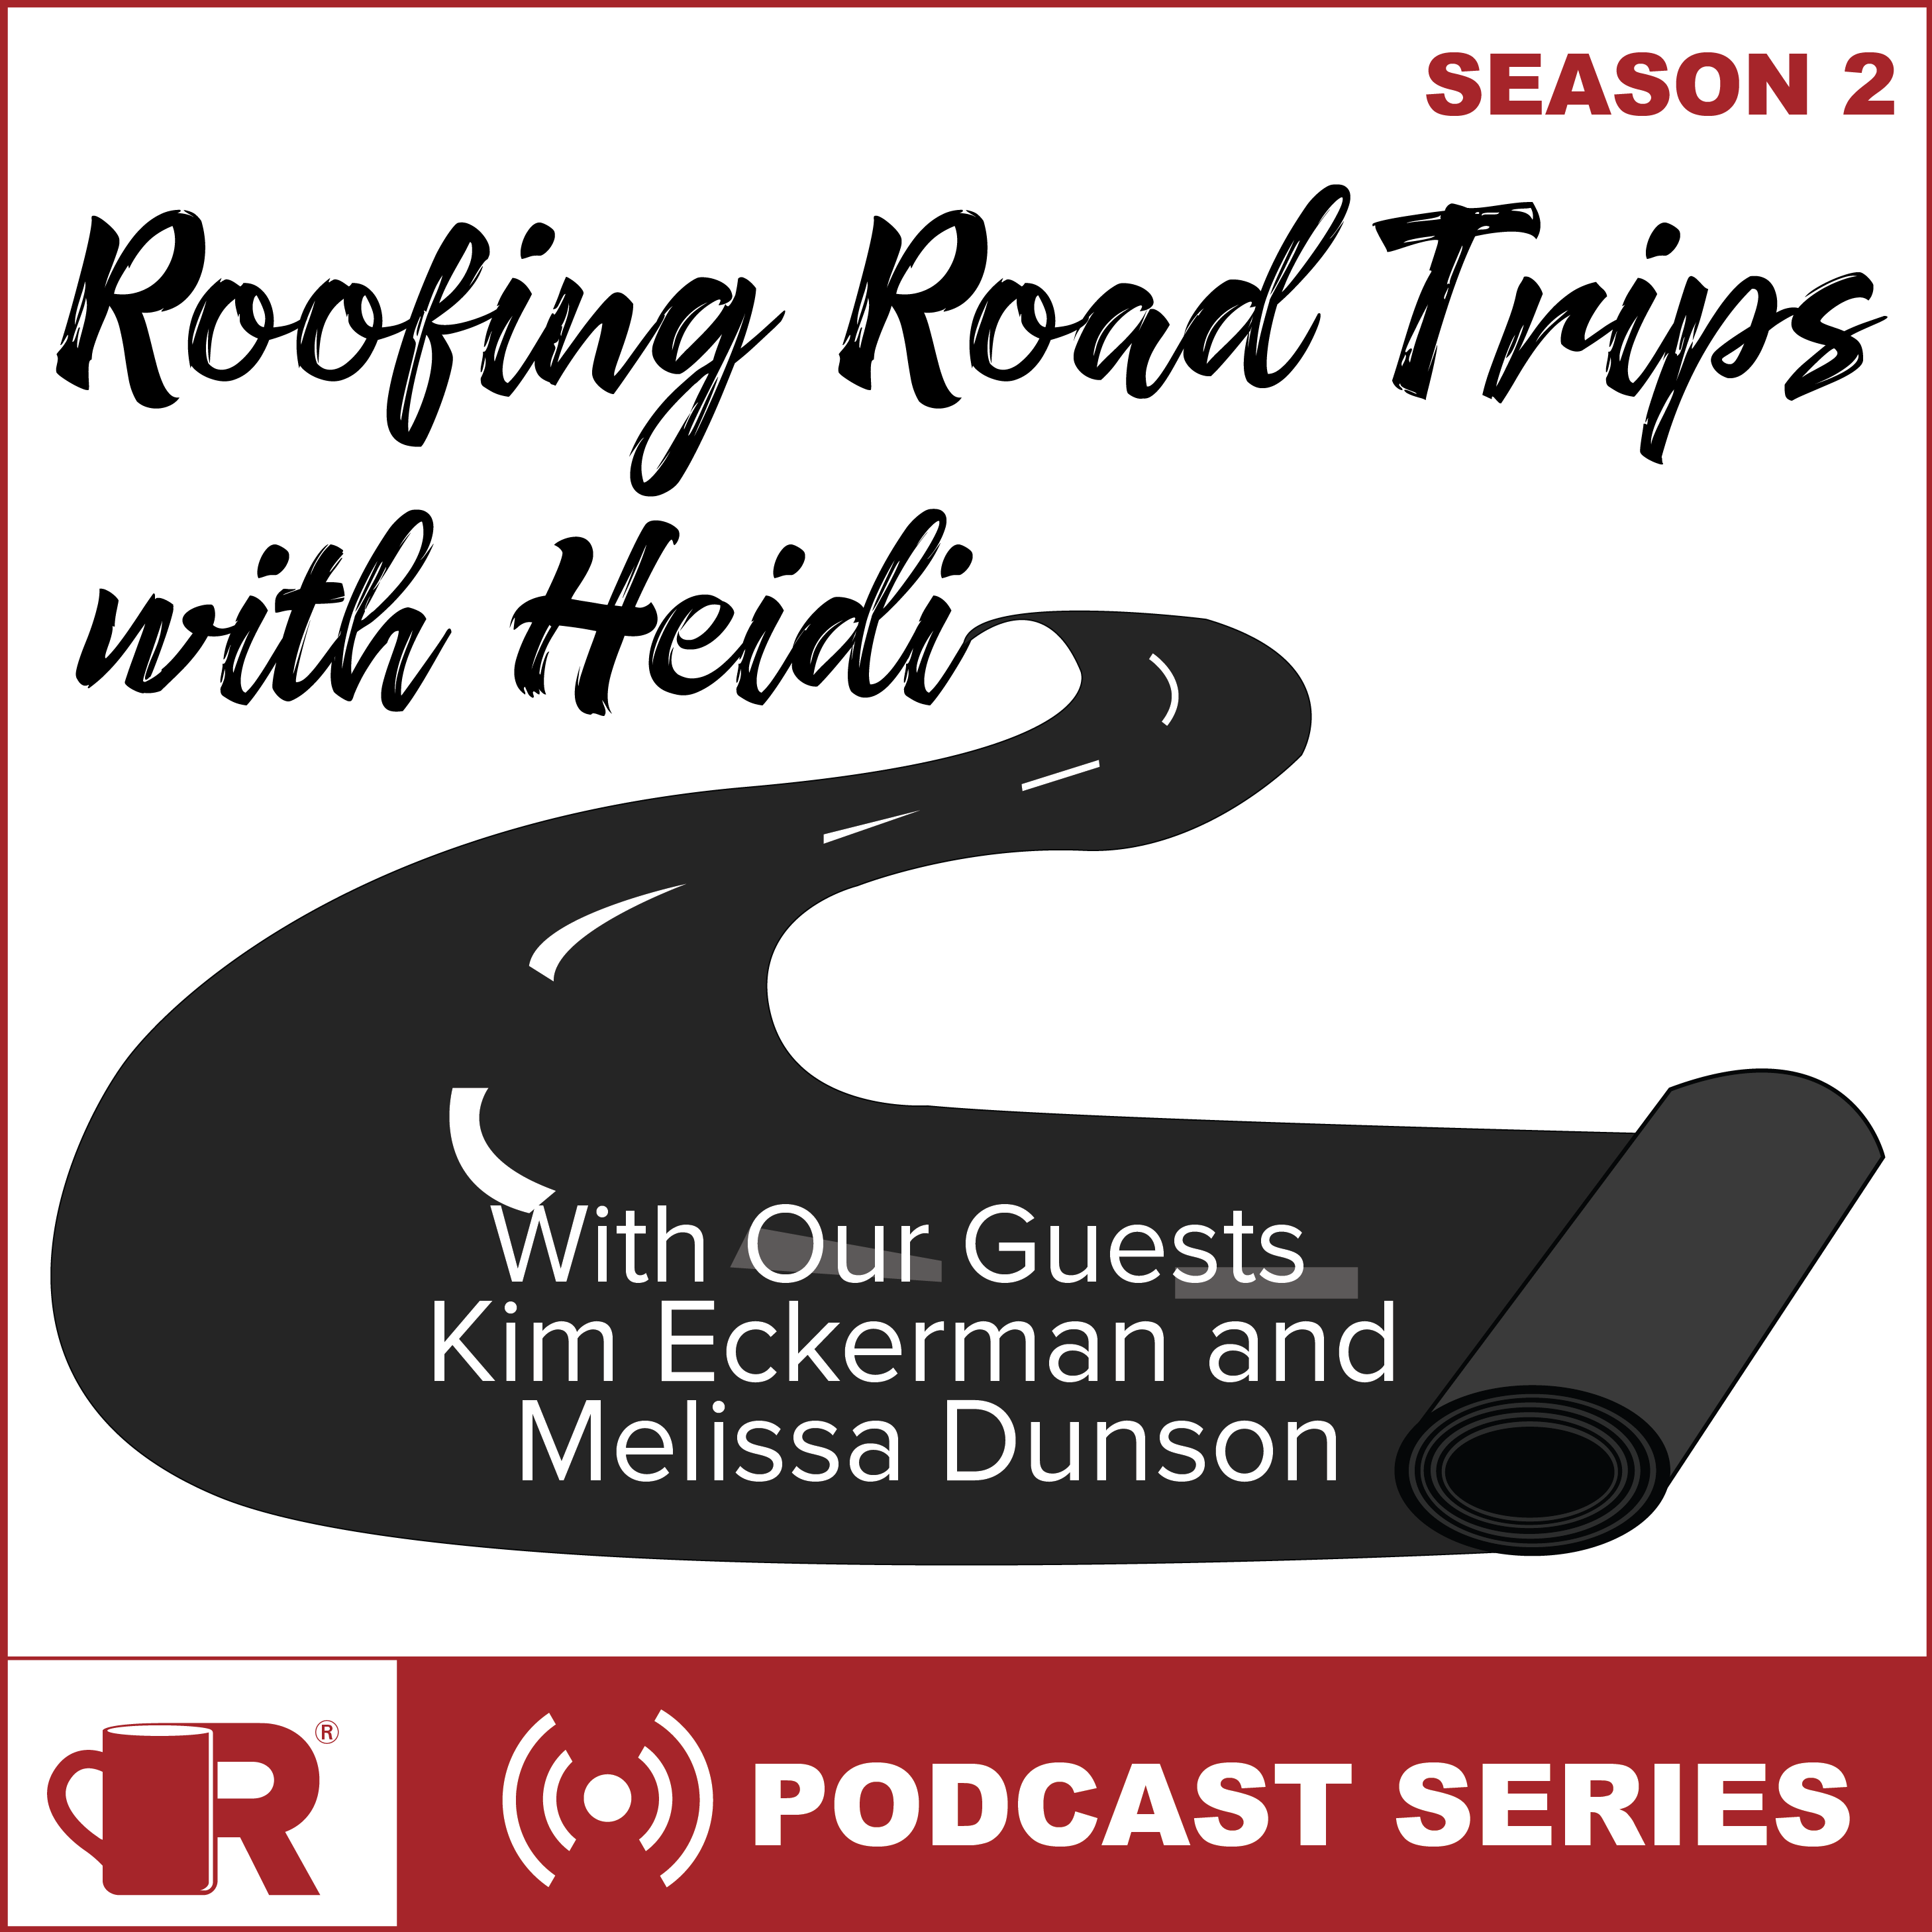 Roofing Road Trips with Heidi with Special Guests Kim Eckerman and Melissa Dunson